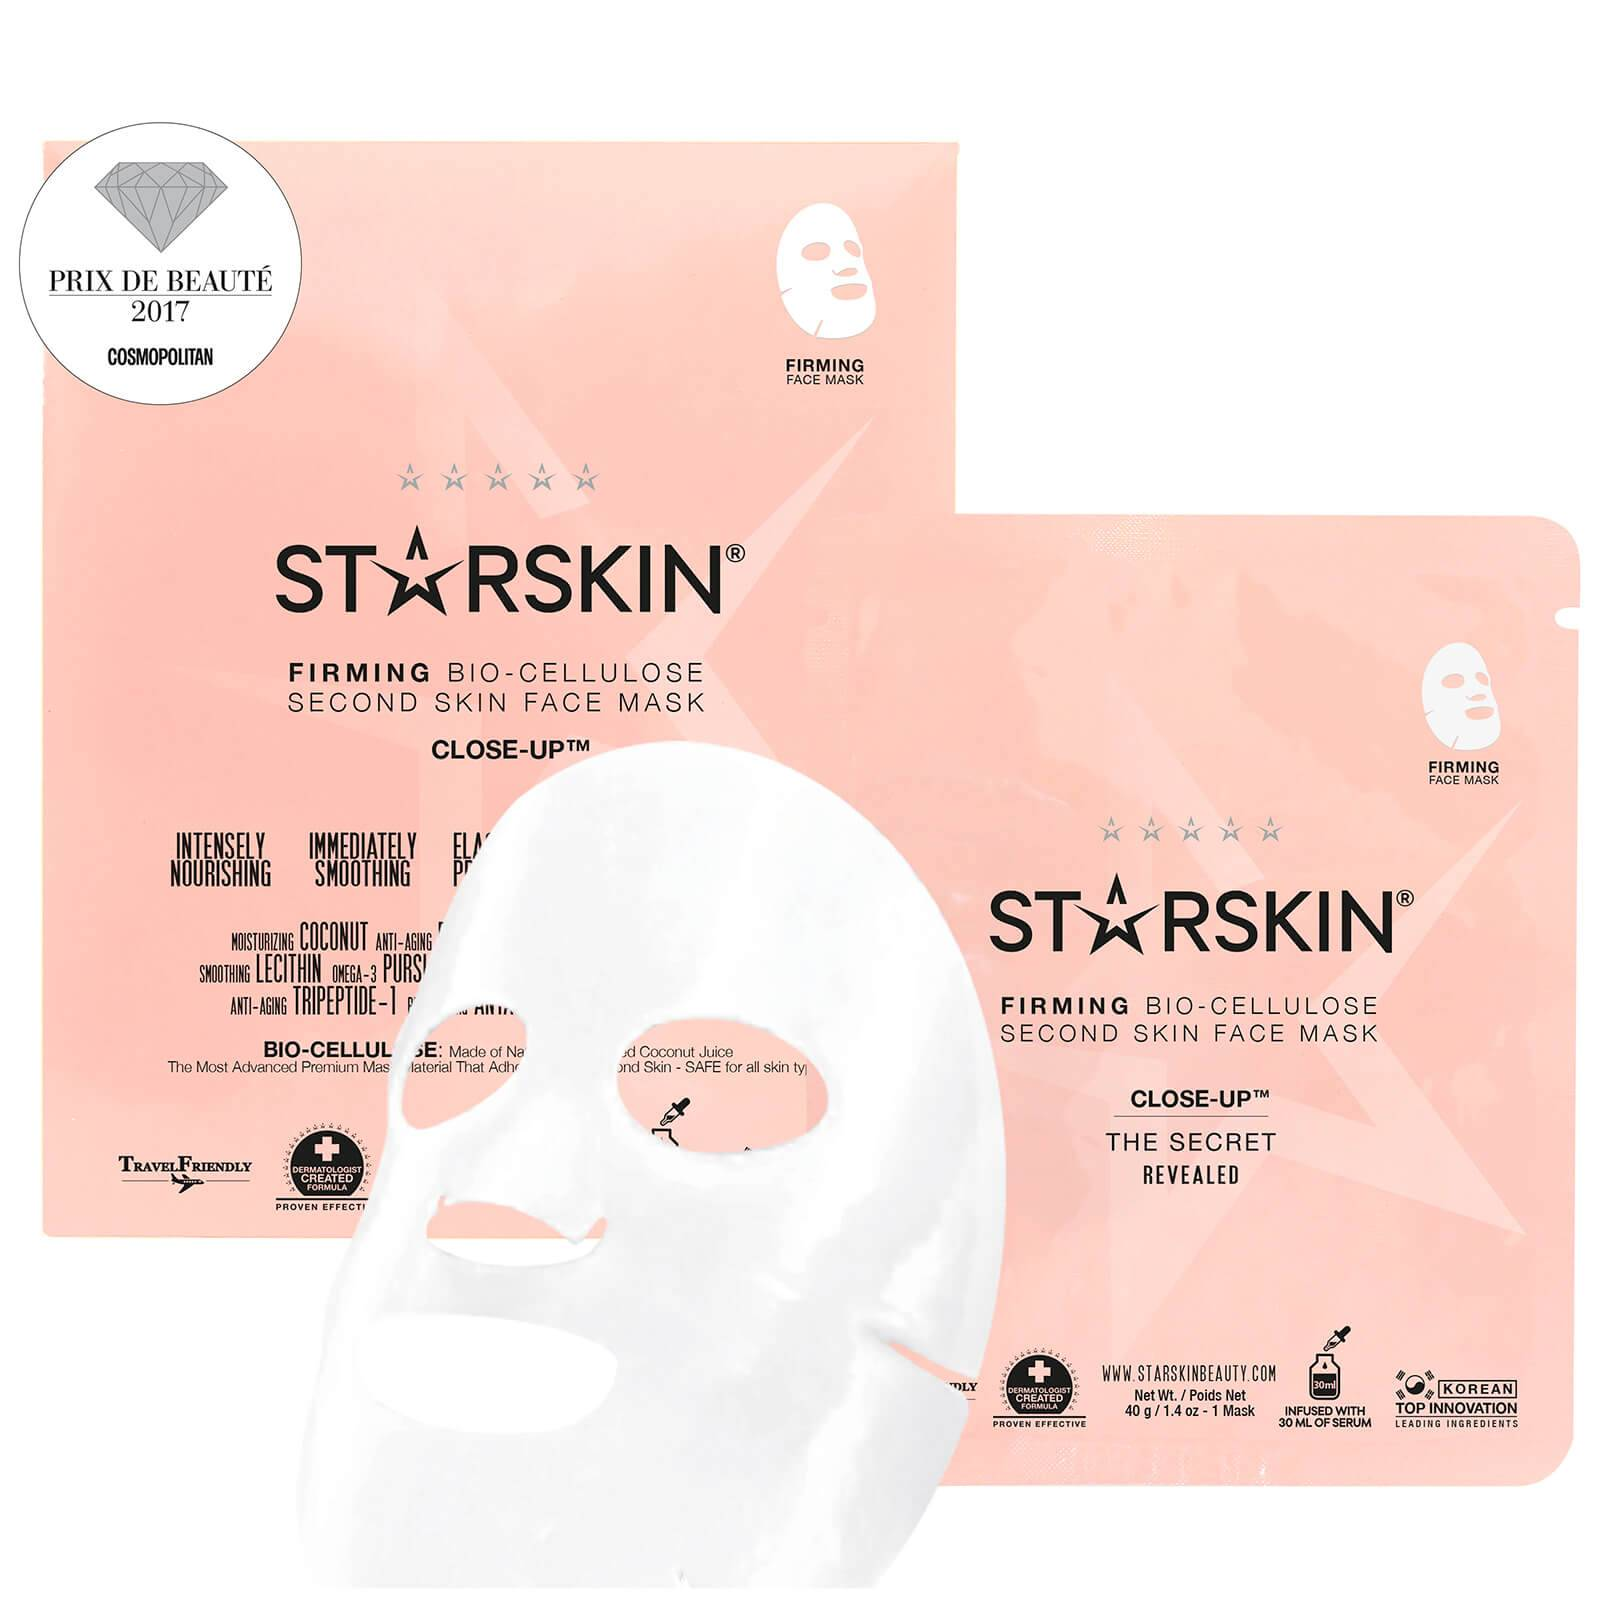 STARSKIN Masque Visage Raffermissant Seconde Peau Noix de Coco Bio-Cellulose Close-Up™ STARSKIN